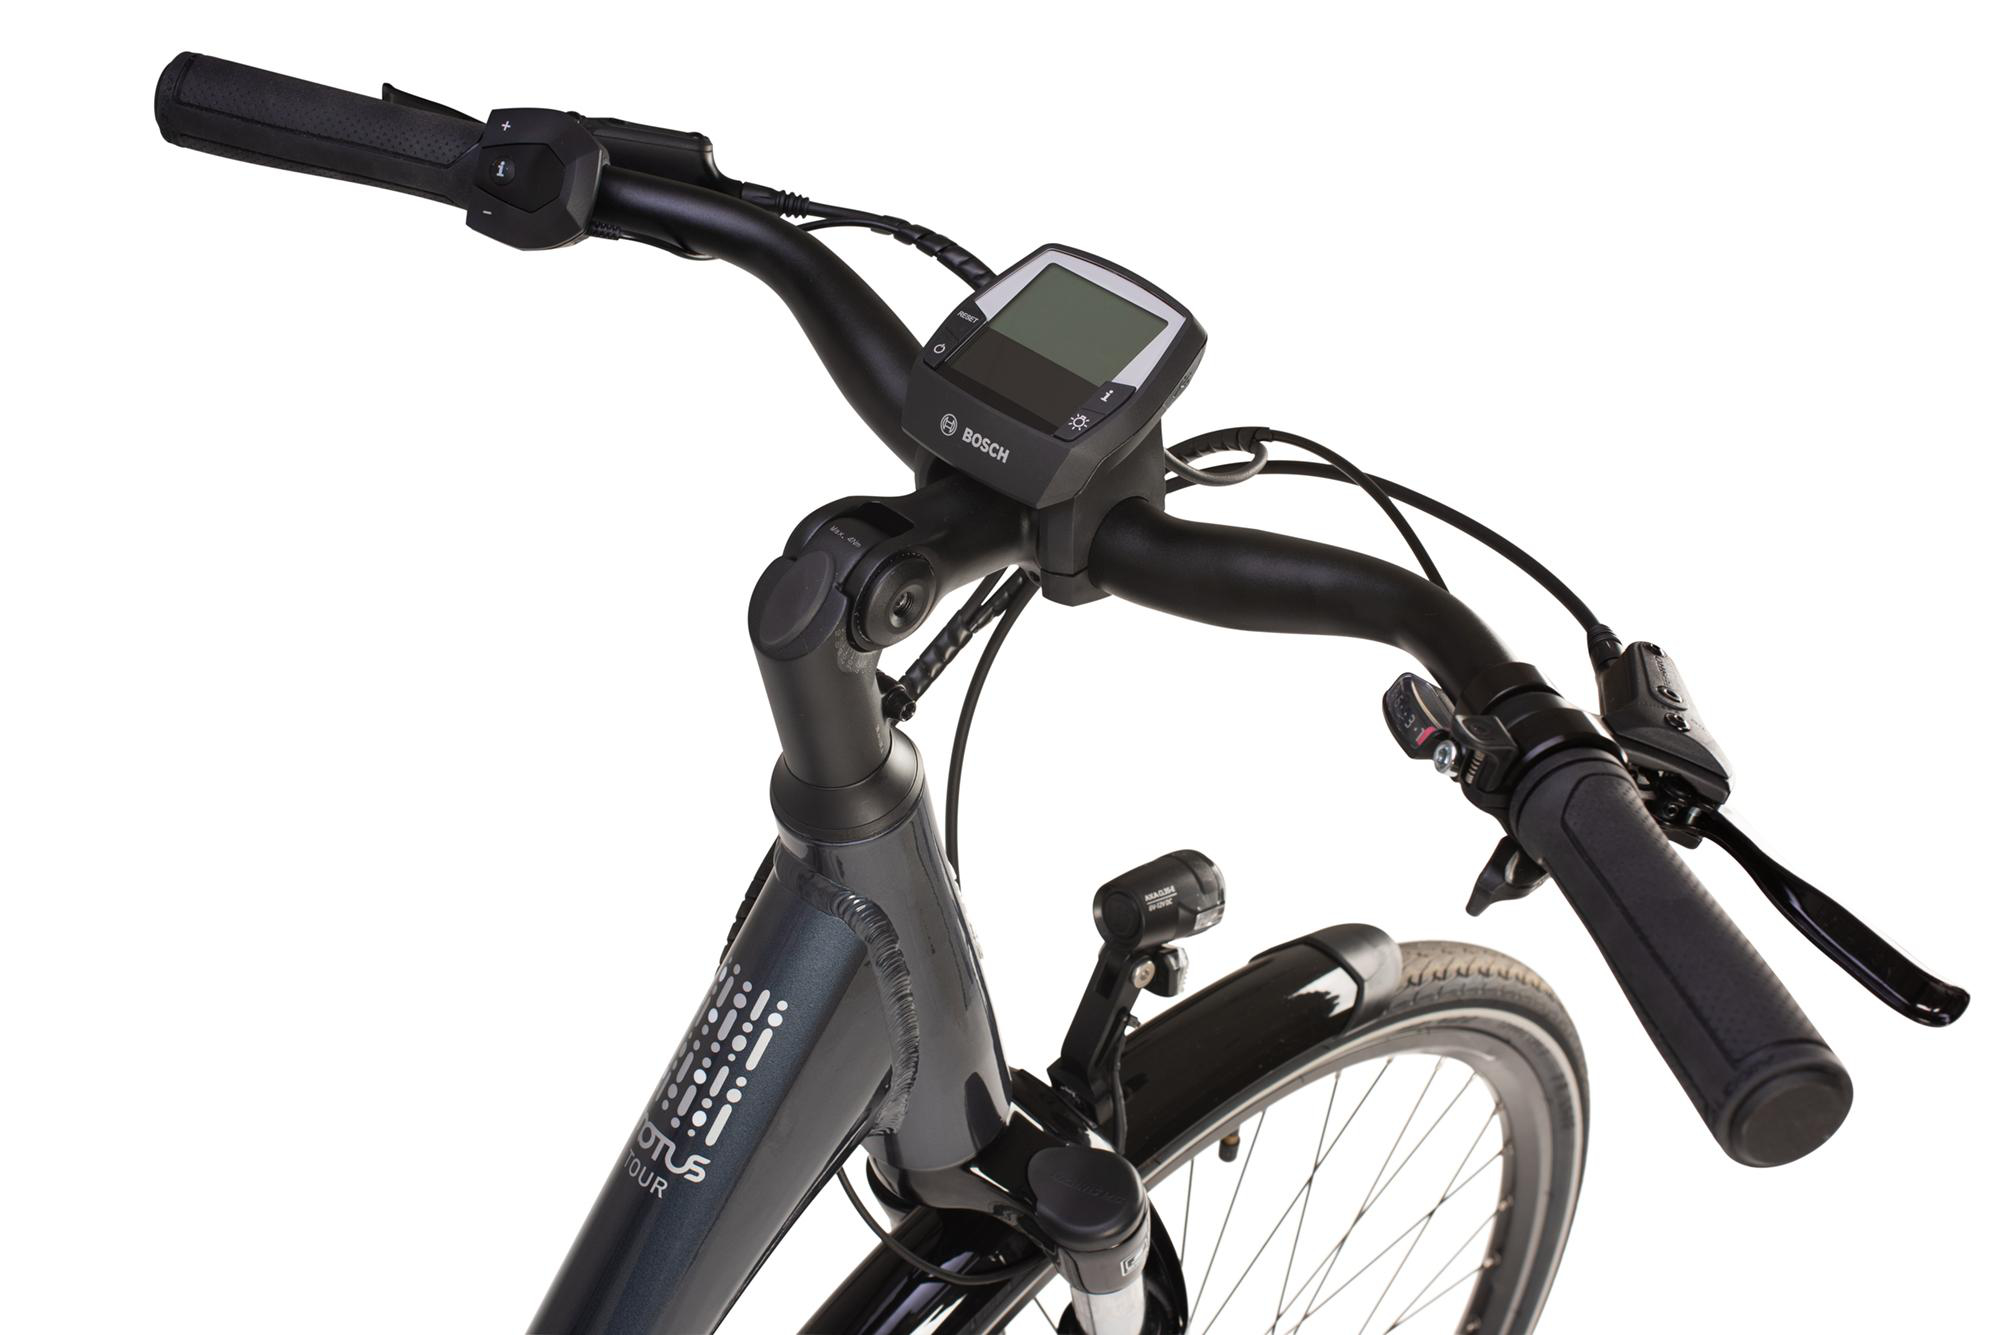 Raleigh Motus Tour low step electric bike handlebars and controller